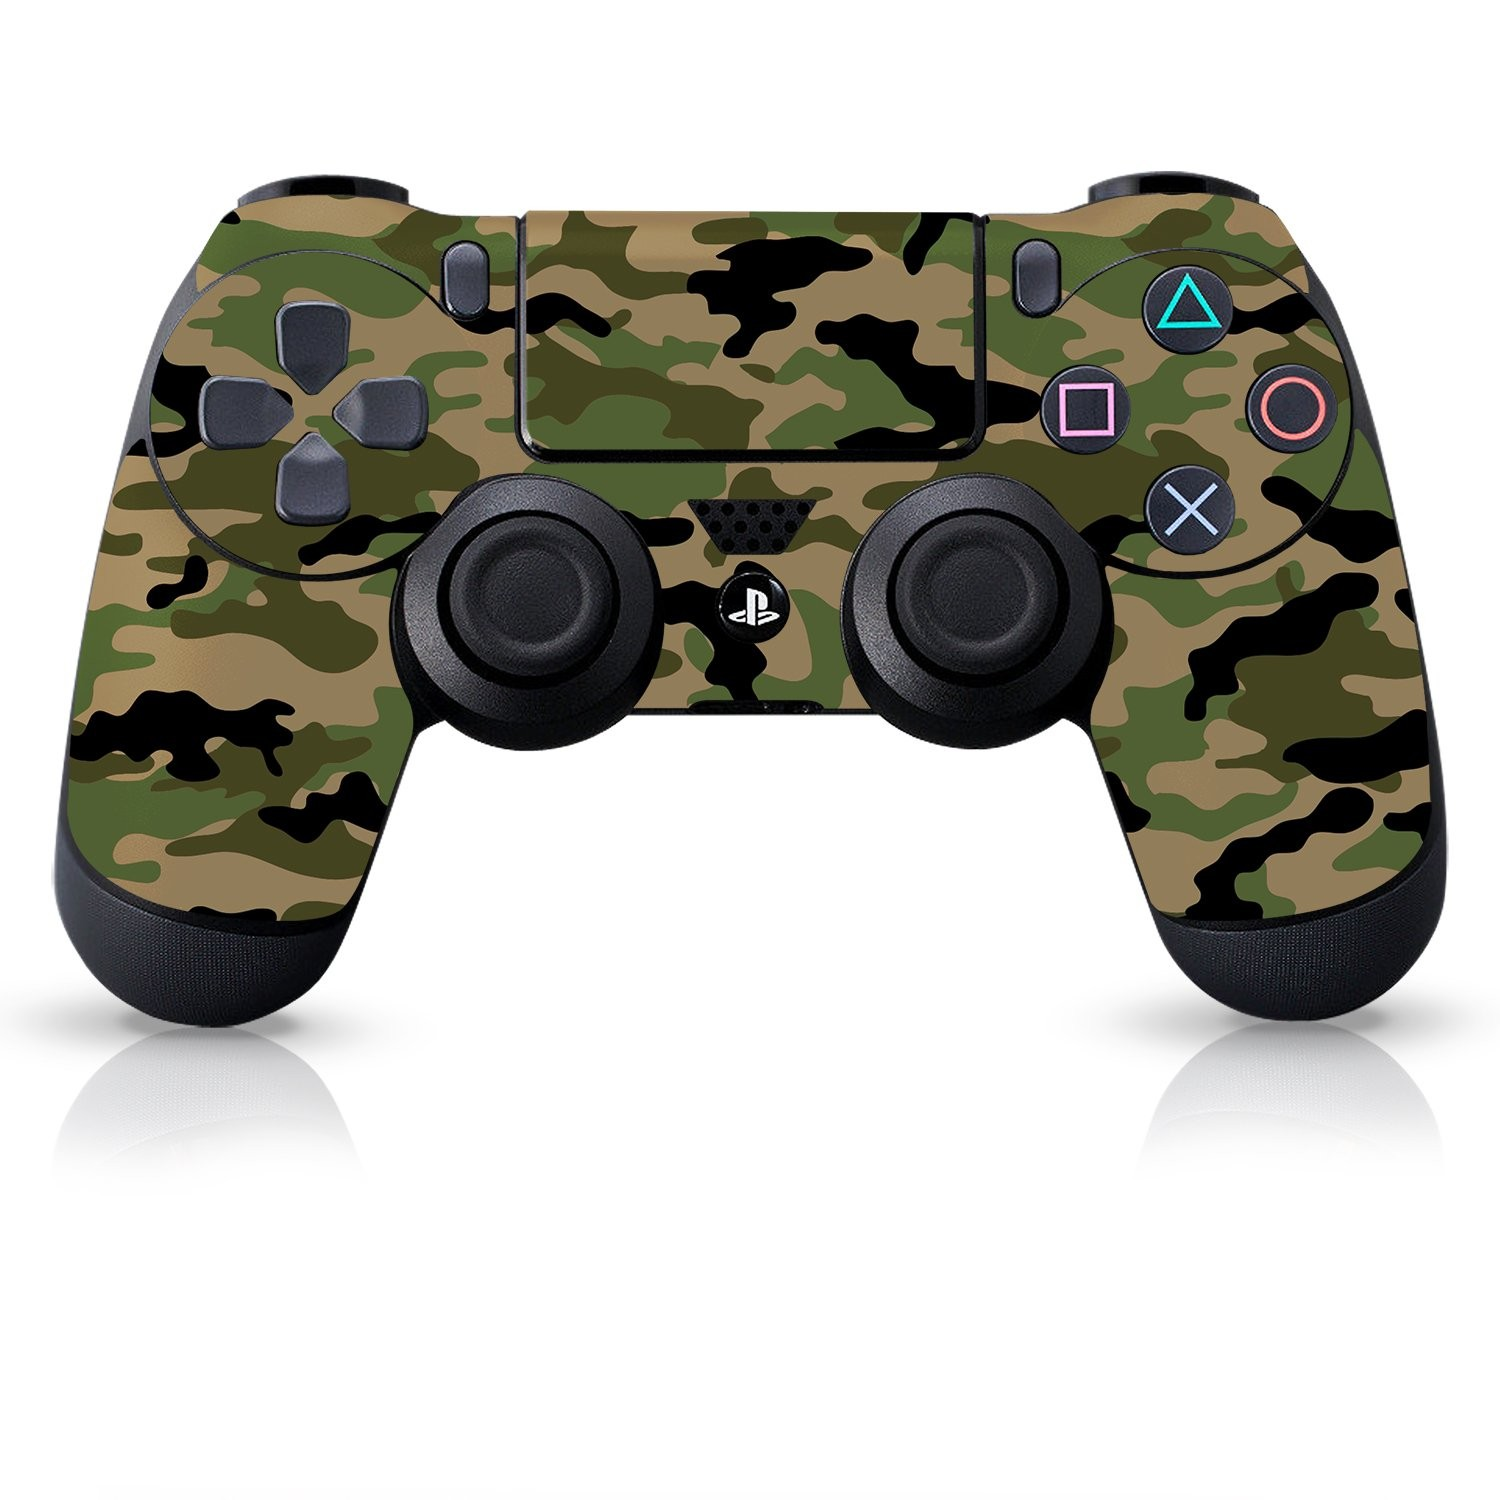 Officially Licensed Controller Skin - Forrest Camo